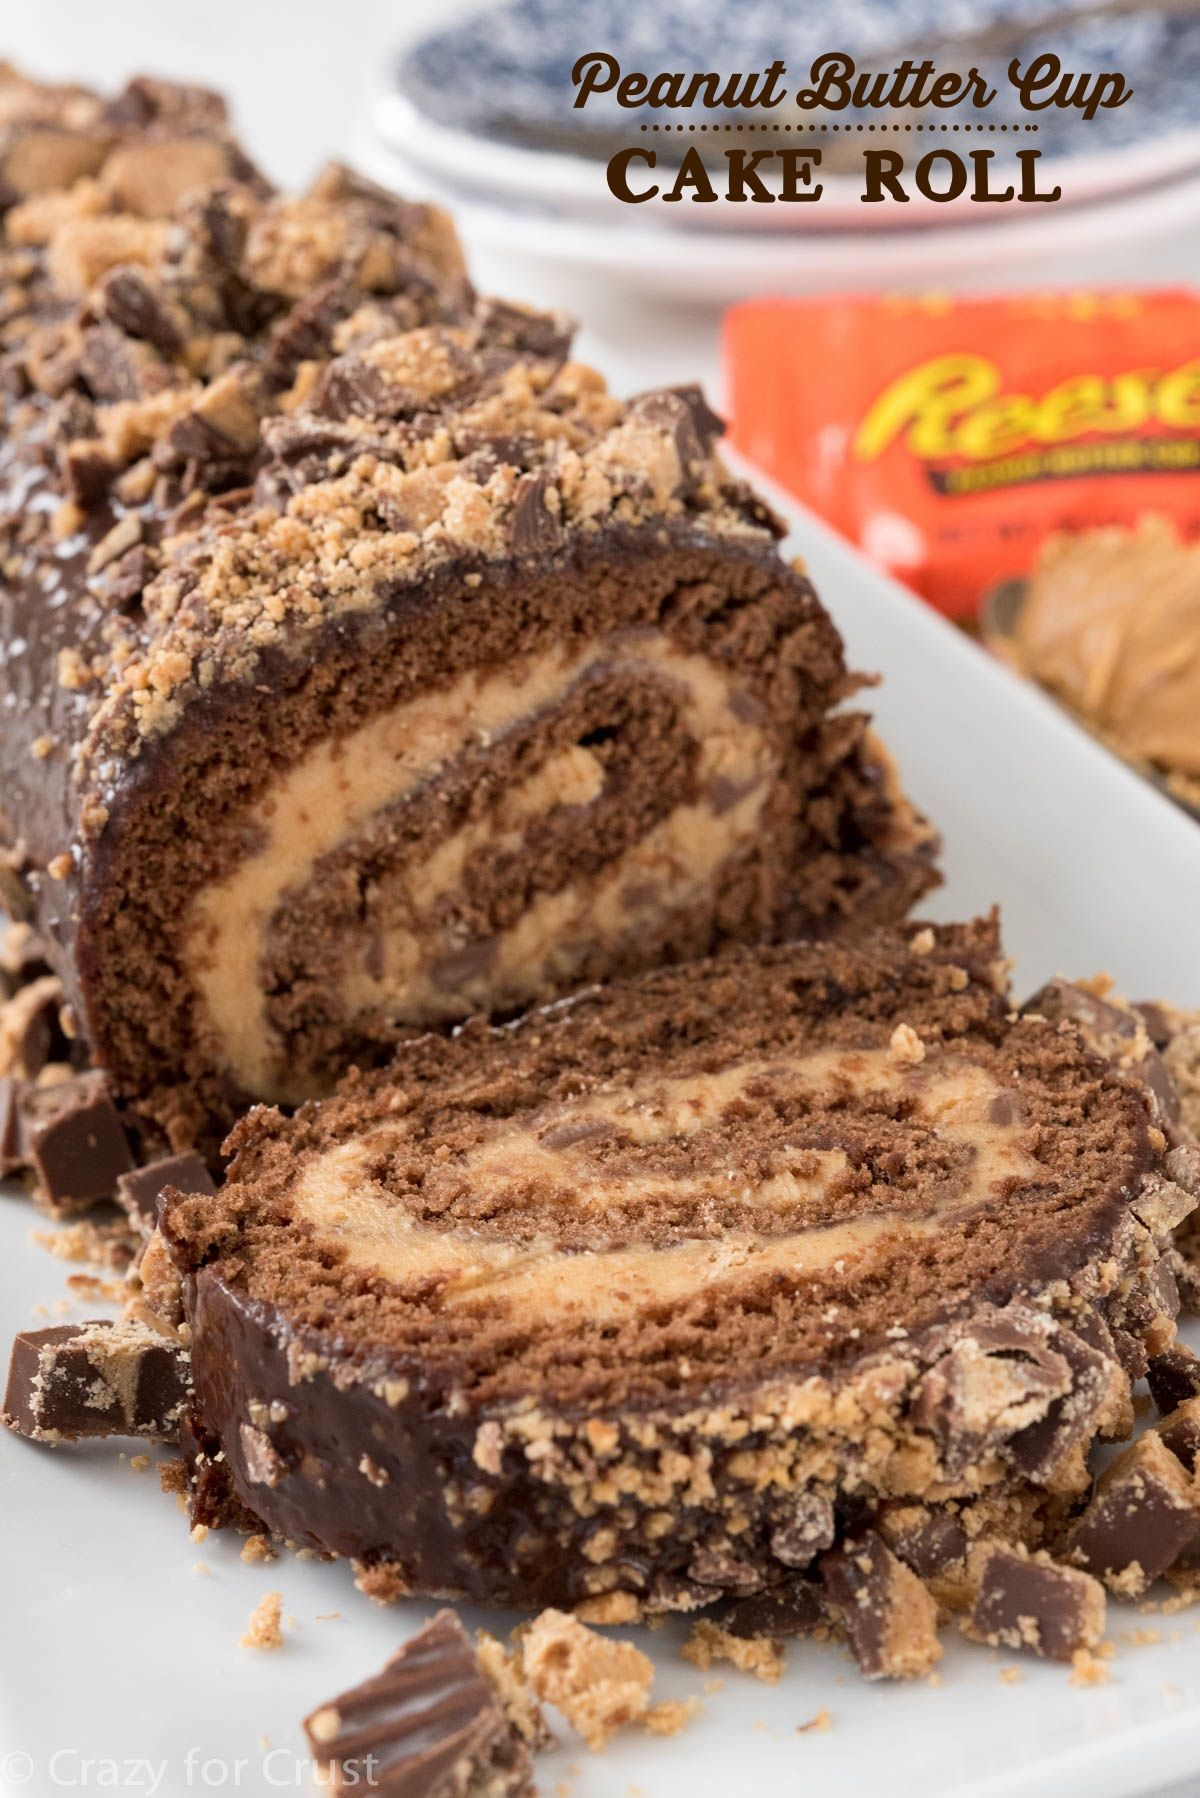 Peanut Butter Cup Cake Roll - Crazy for Crust